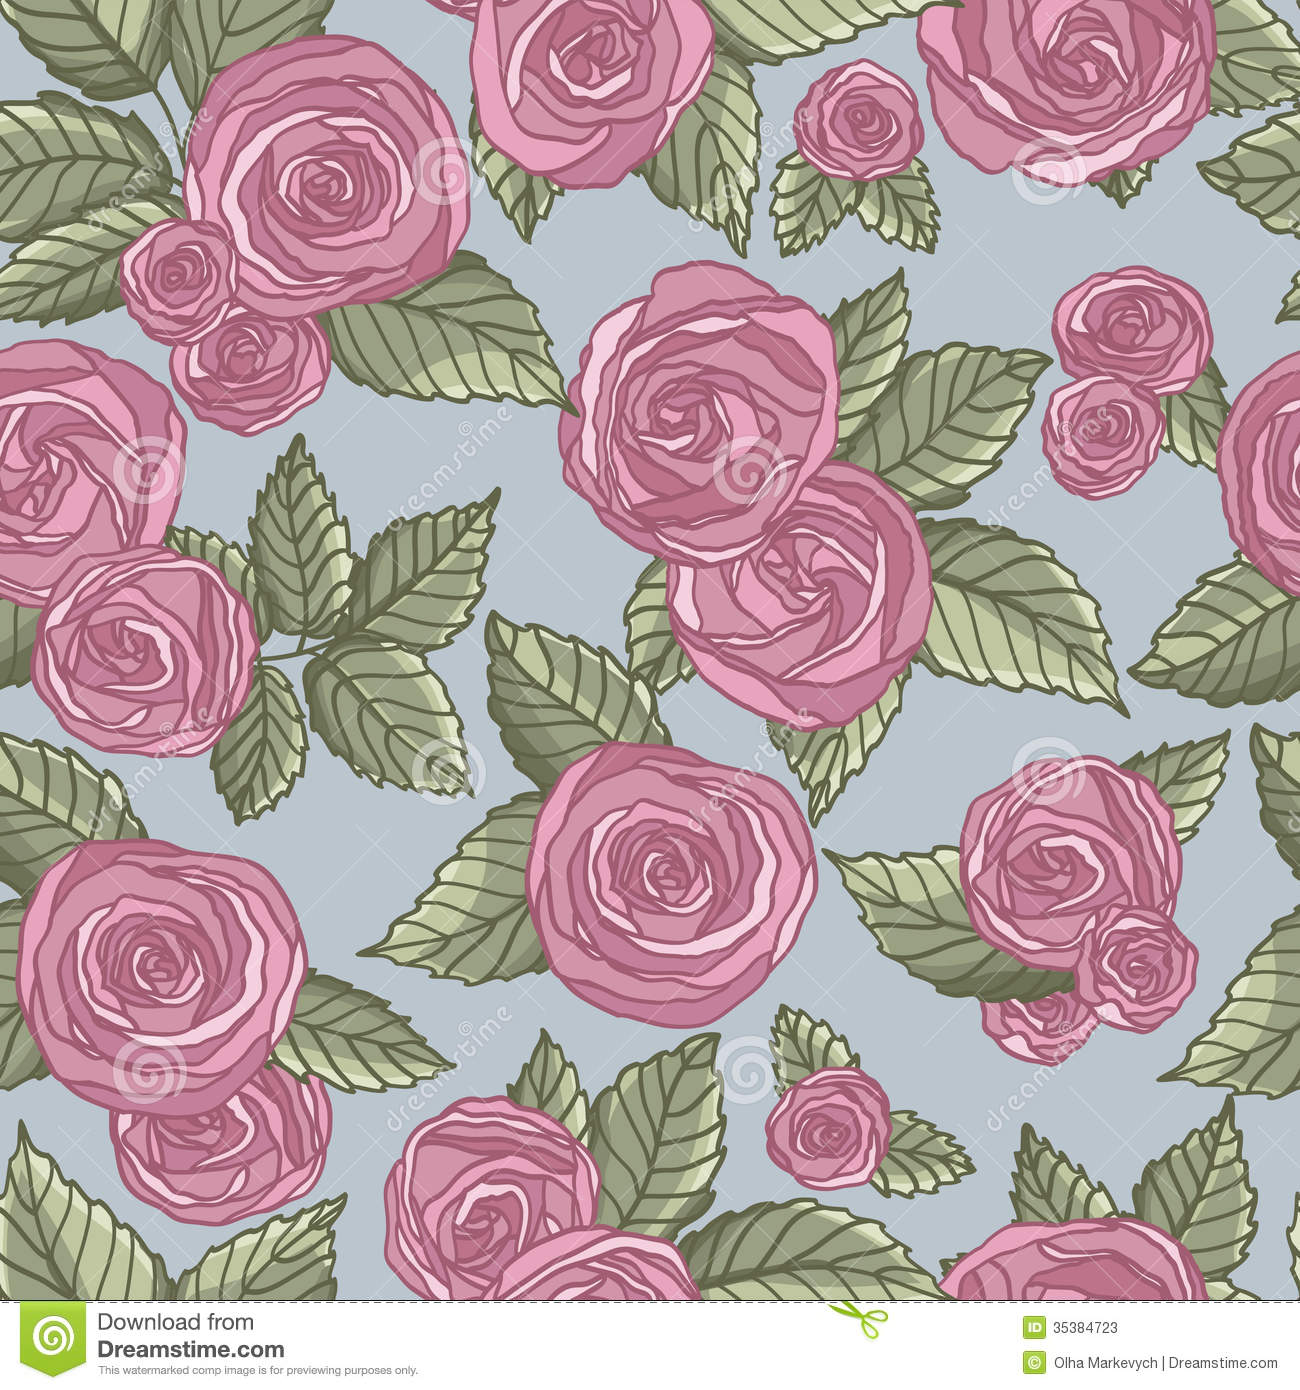 Rose Pattern Stock Photos - Image: 35384723